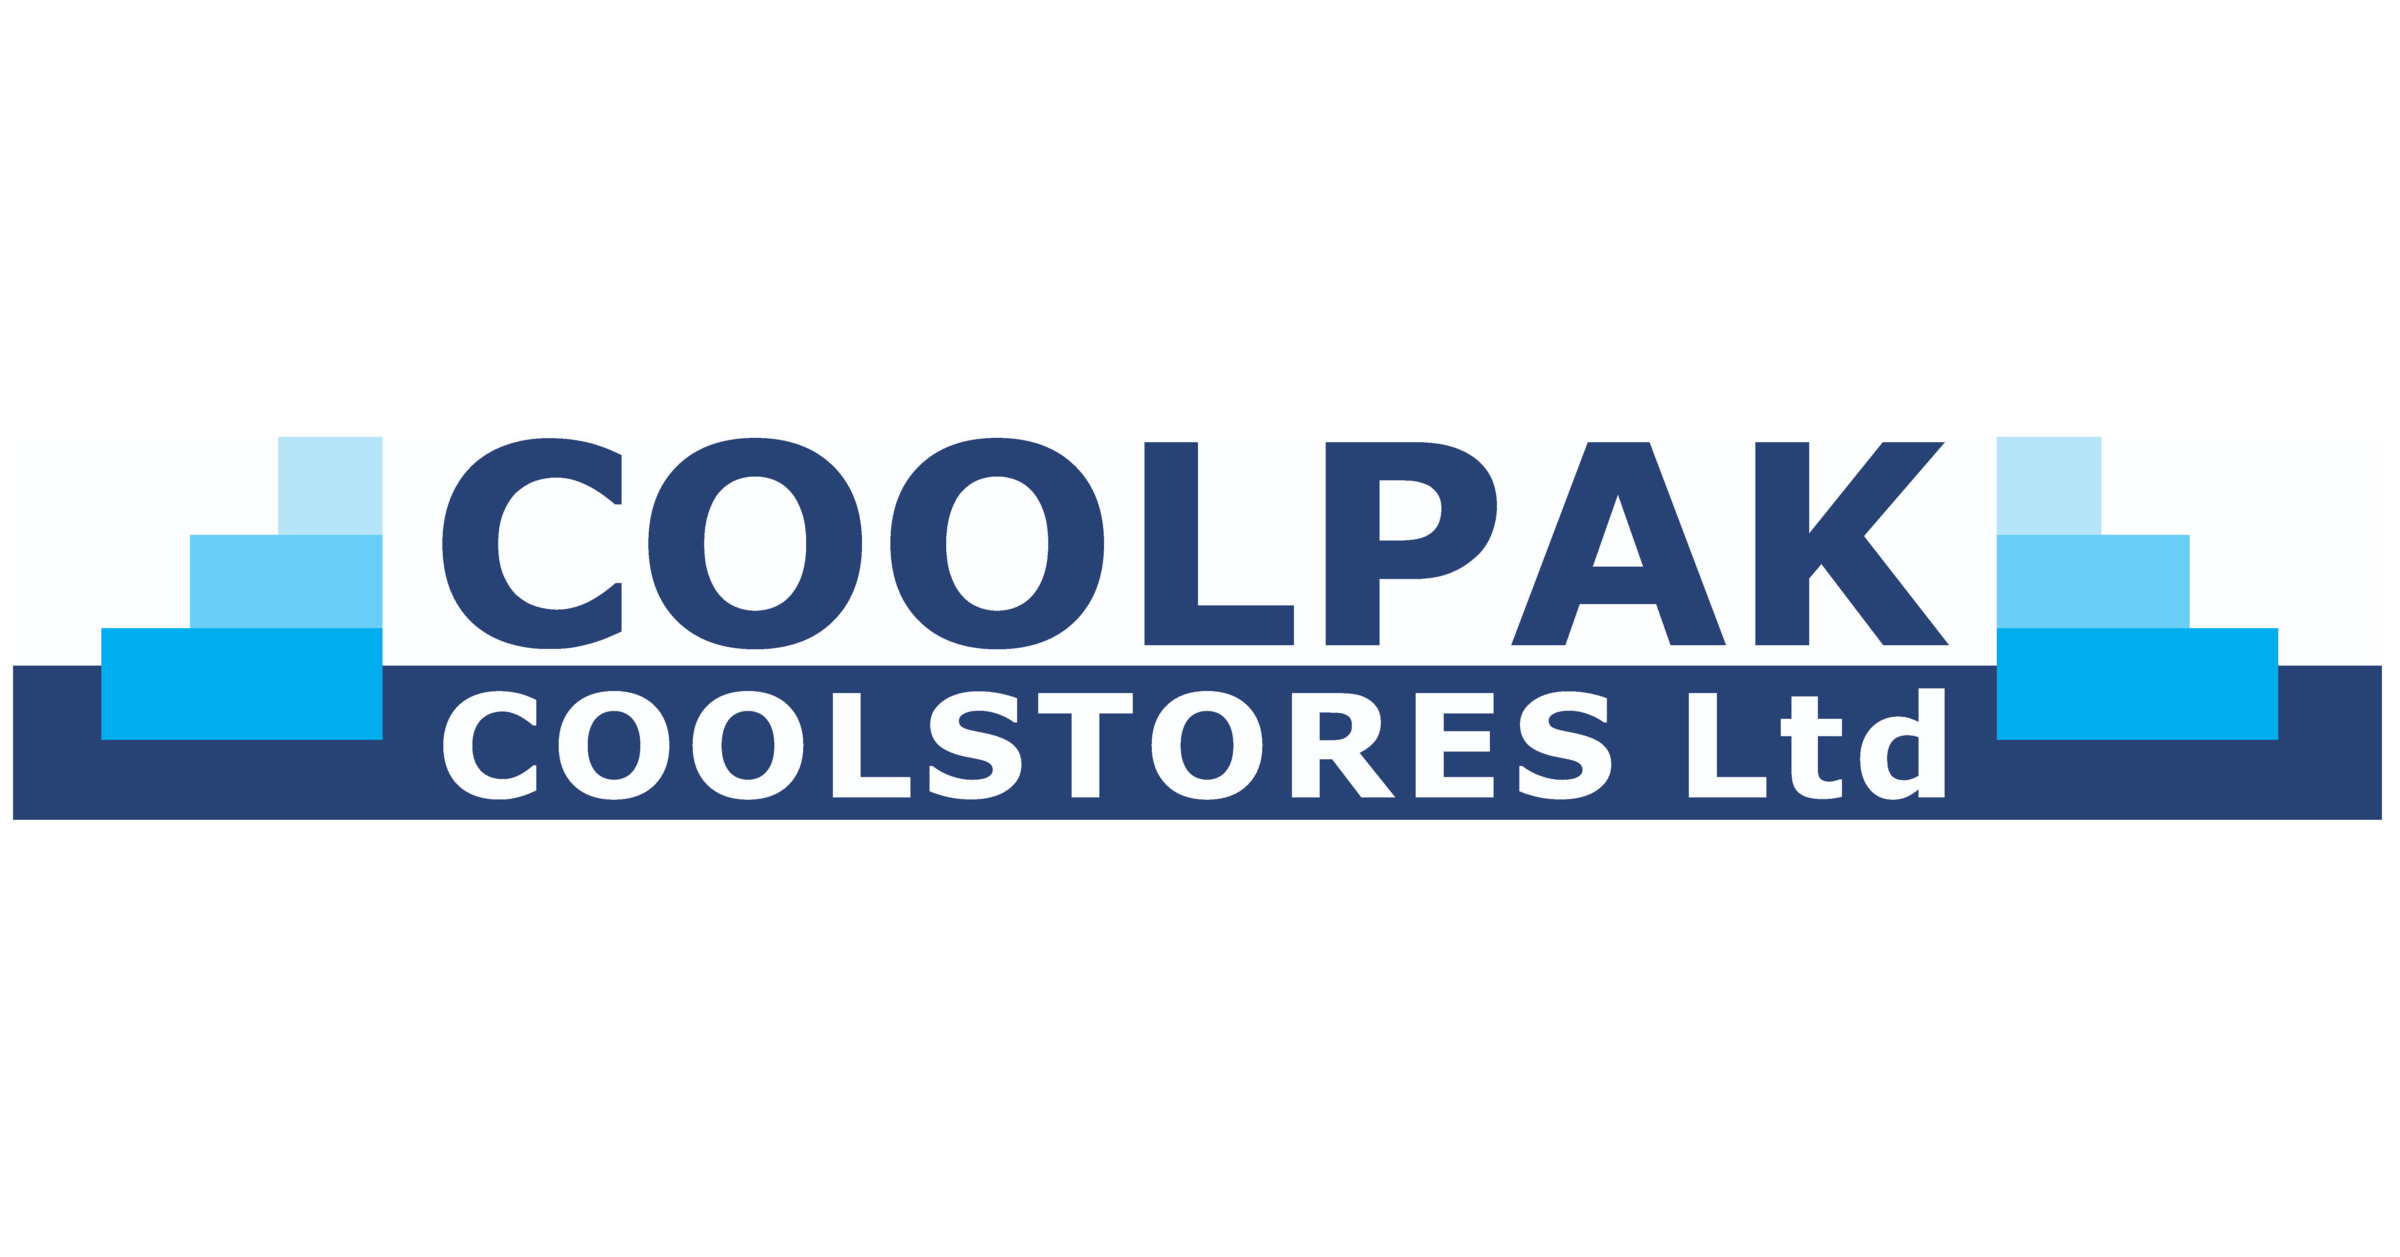 Coolpak Coolstores Limited | Terms and Conditions